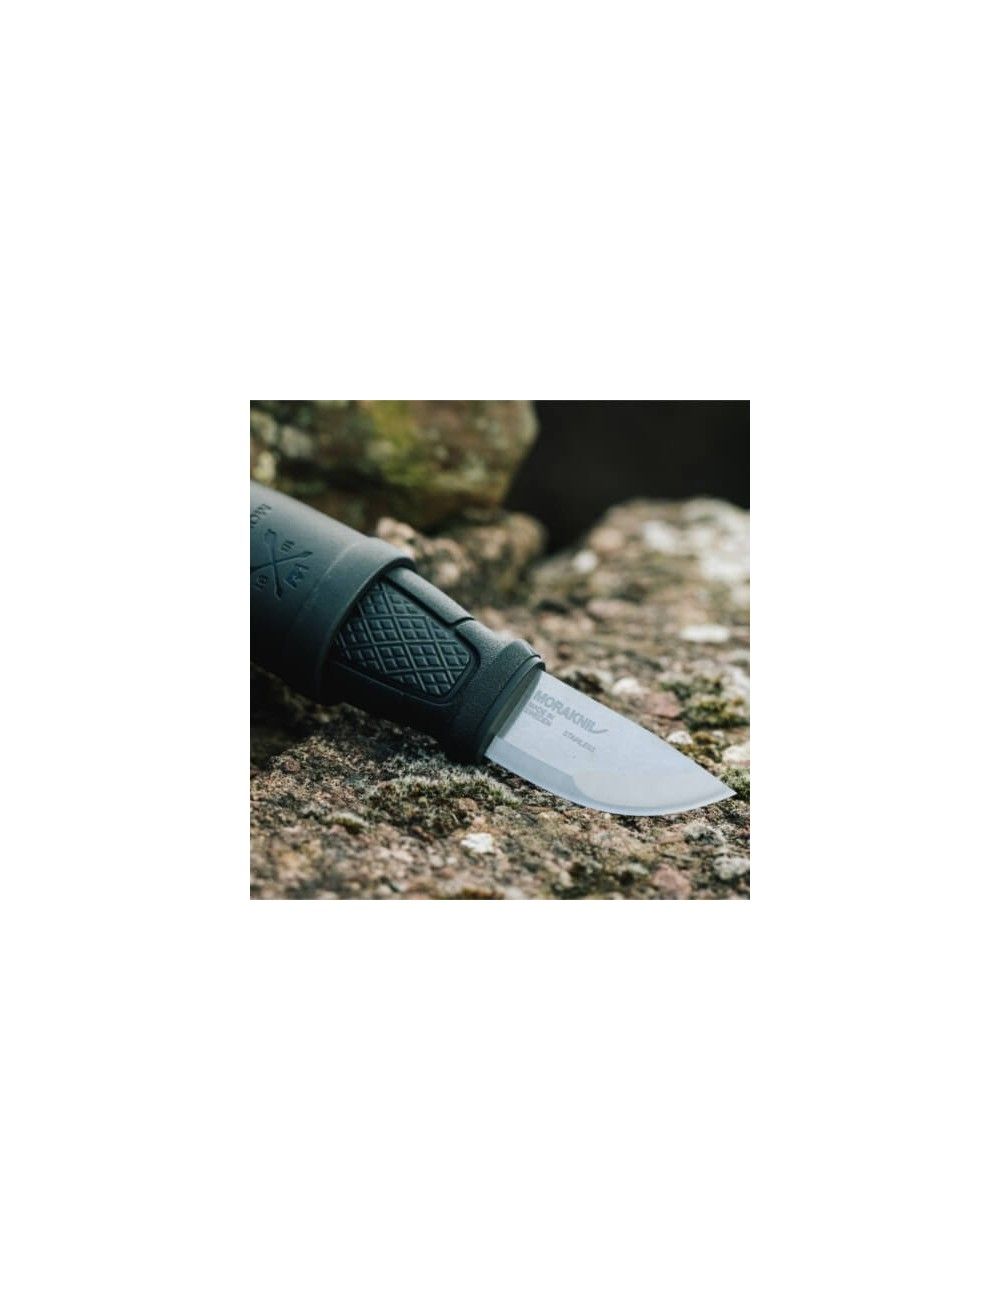 Mora Eldris Neck Knife - Schwarz